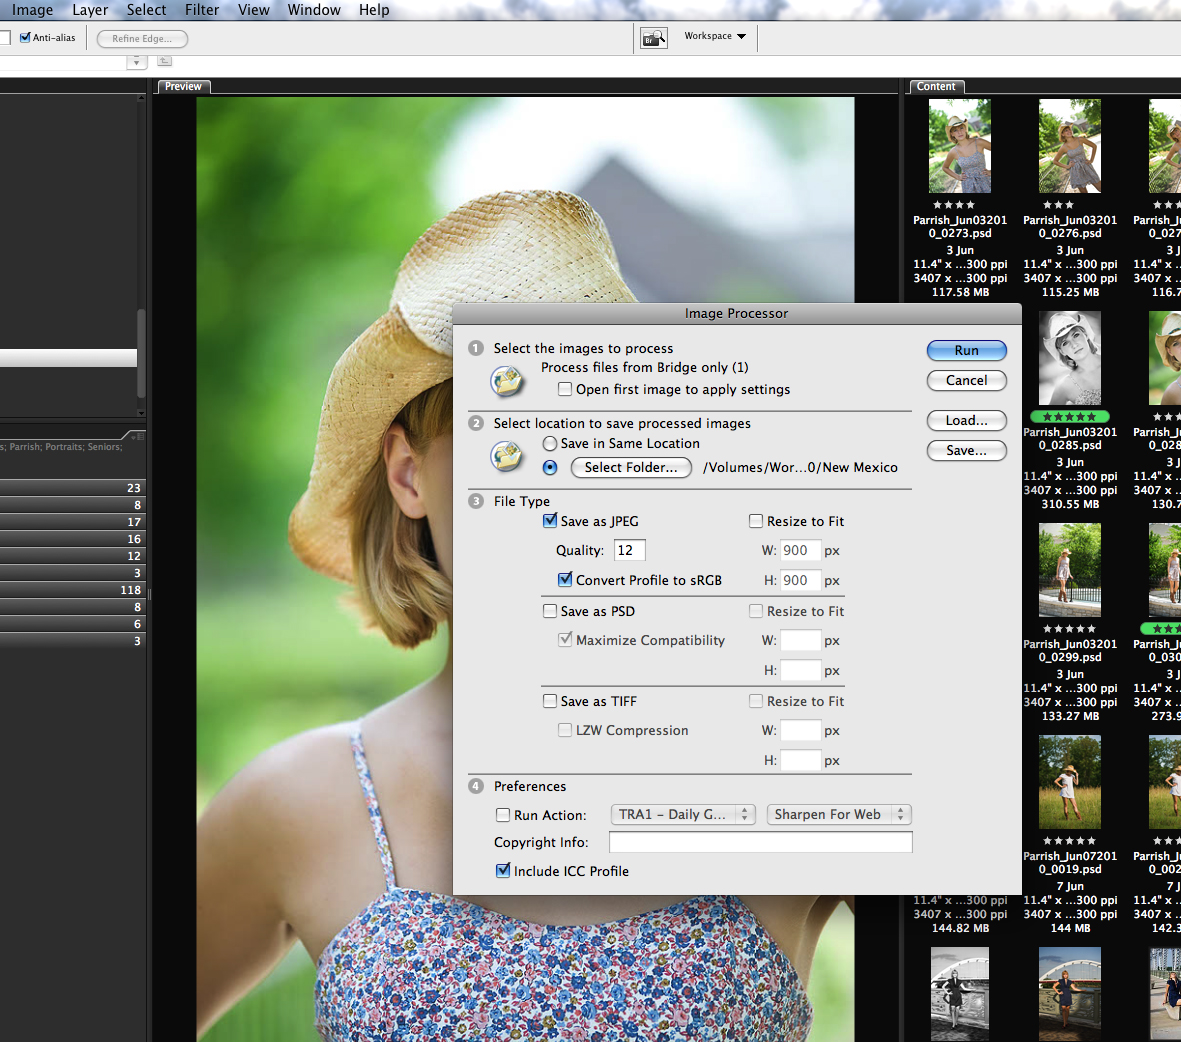 15-Image-Processor Digital Workflow Using Photoshop and Adobe Camera Raw and Bridge Guest Bloggers Photoshop Tips & Tutorials